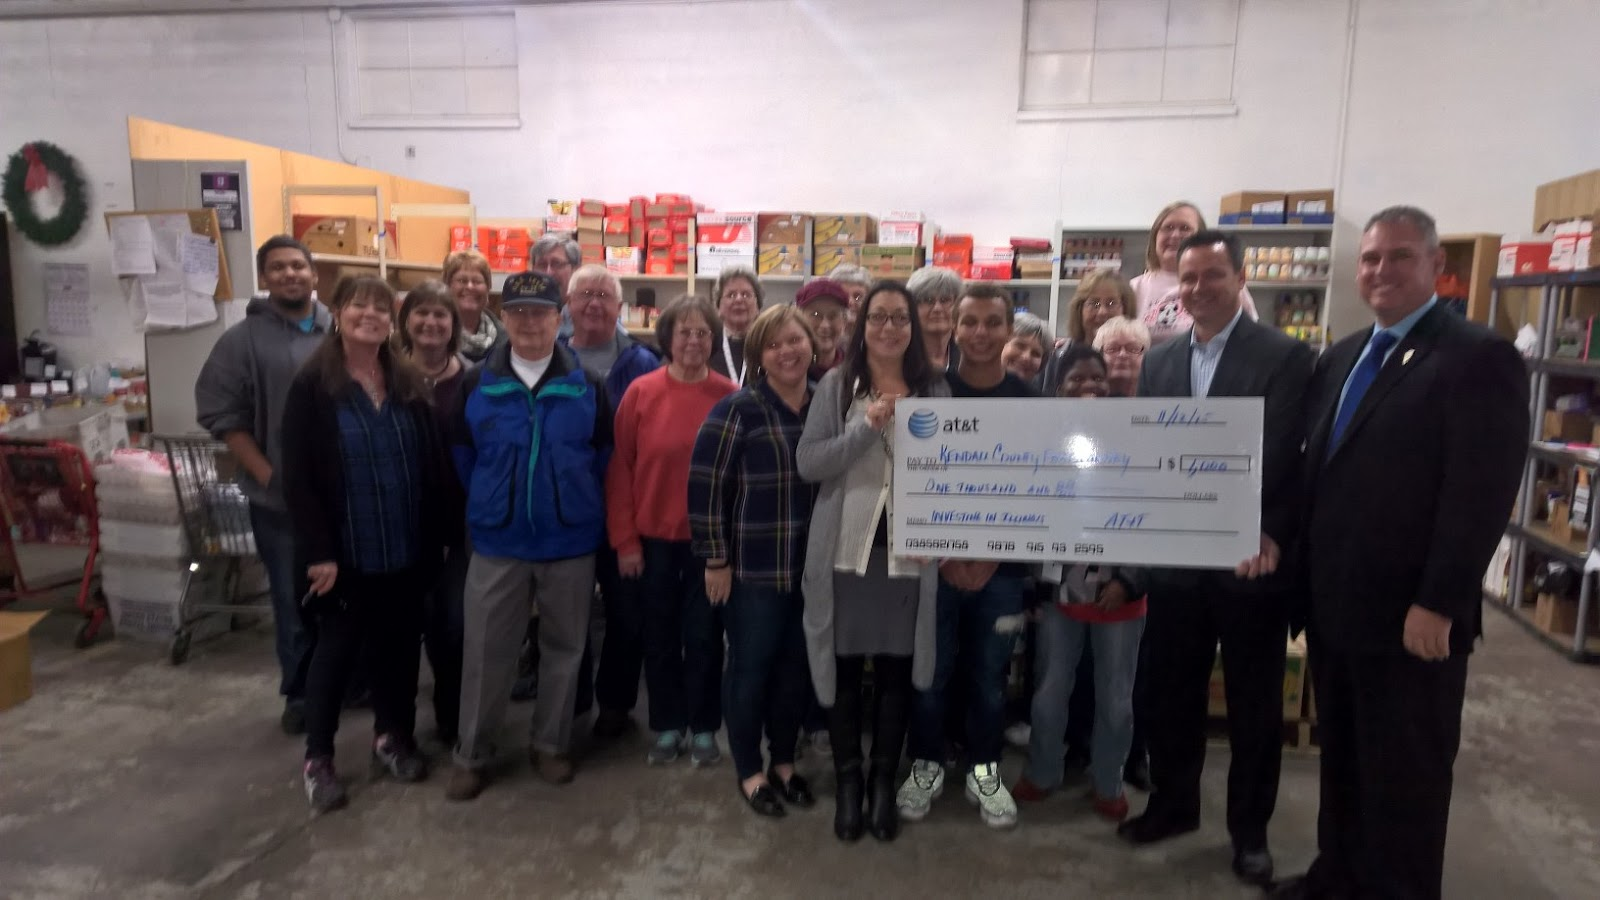 Illinois kendall county oswego - Keith Wheeler R Oswego Joins At T S John Quinn In Presenting A 1 000 Investing In Illinois Award To The Volunteers And Staff Of The Kendall County Food